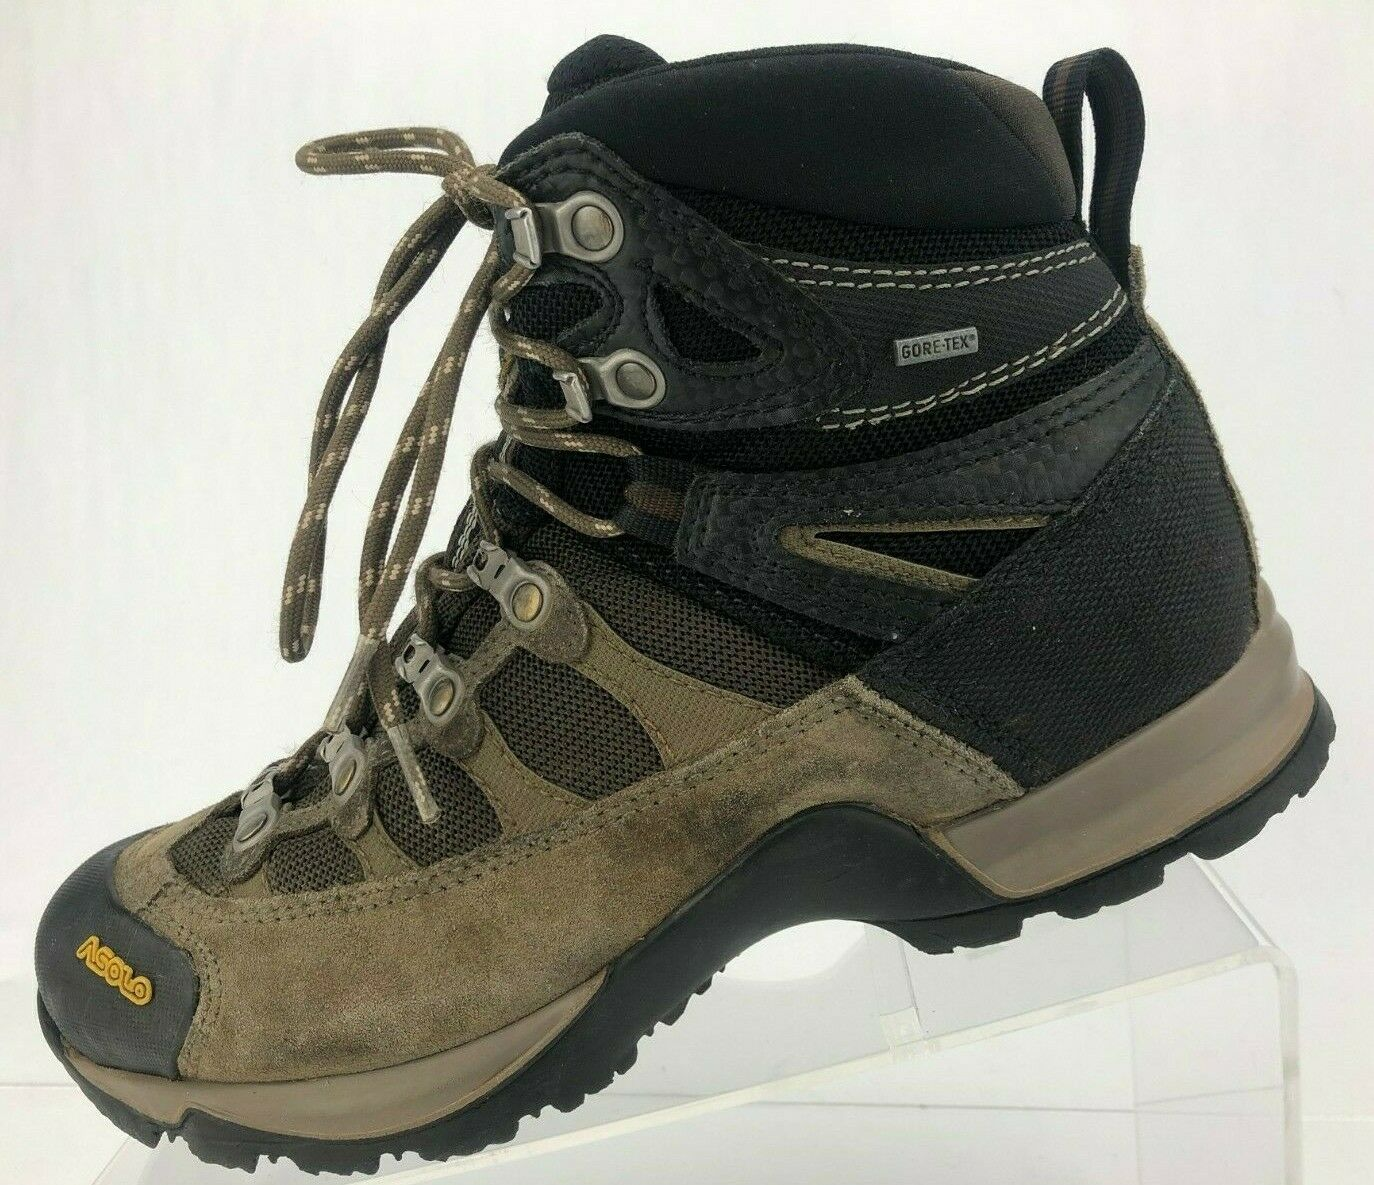 Asolo Fugitive Gore Tex Ankle Boots Brown All Terrain Trail Hiking shoes  Wmns 7